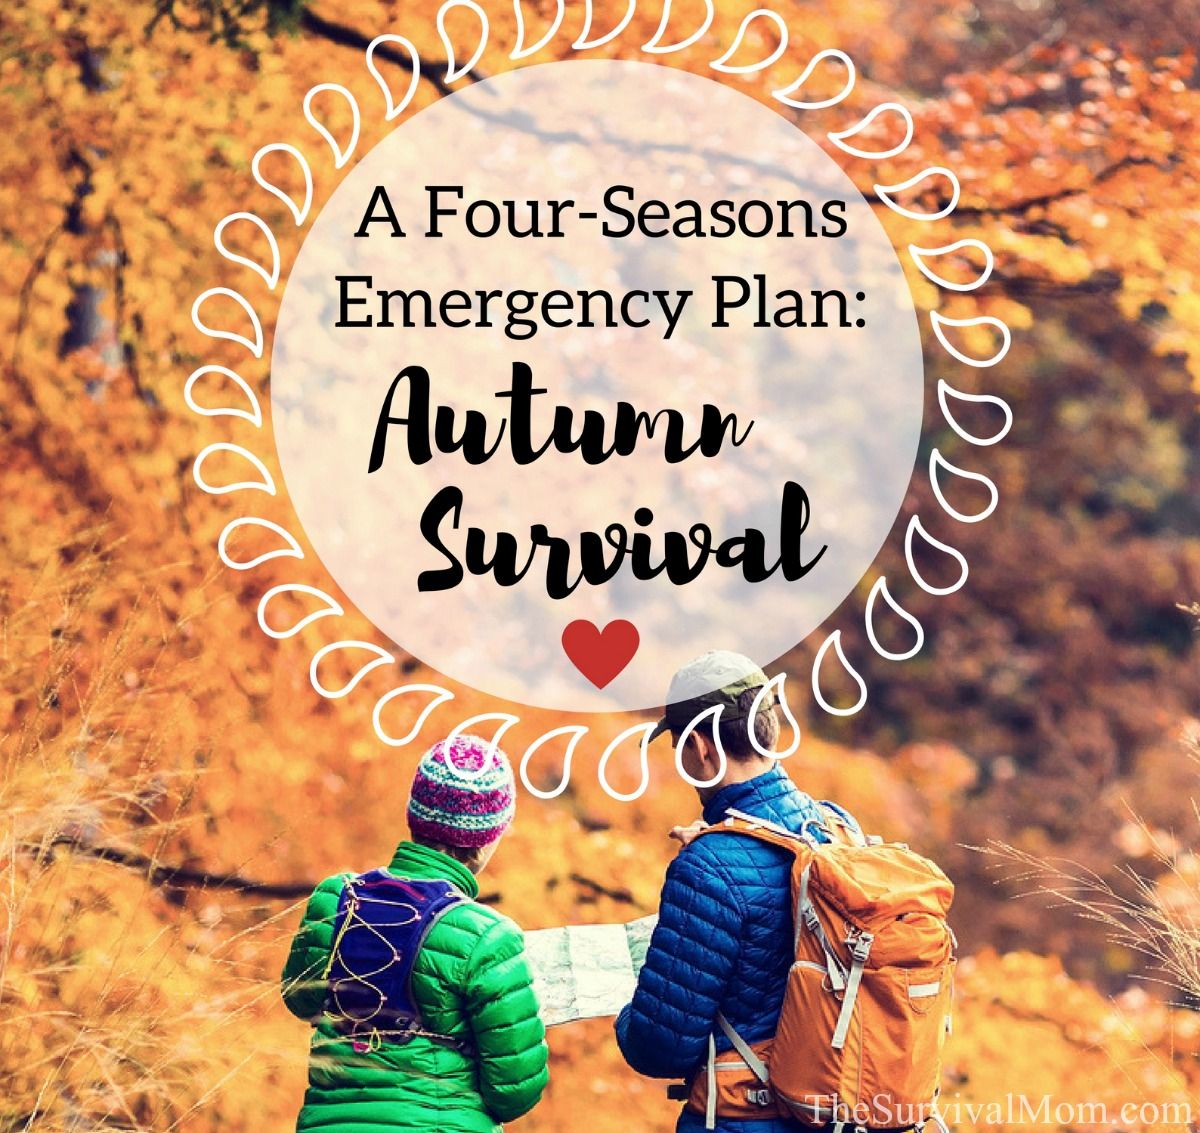 A Four-Seasons Emergency Plan Autumn Survival via The Survival Mom